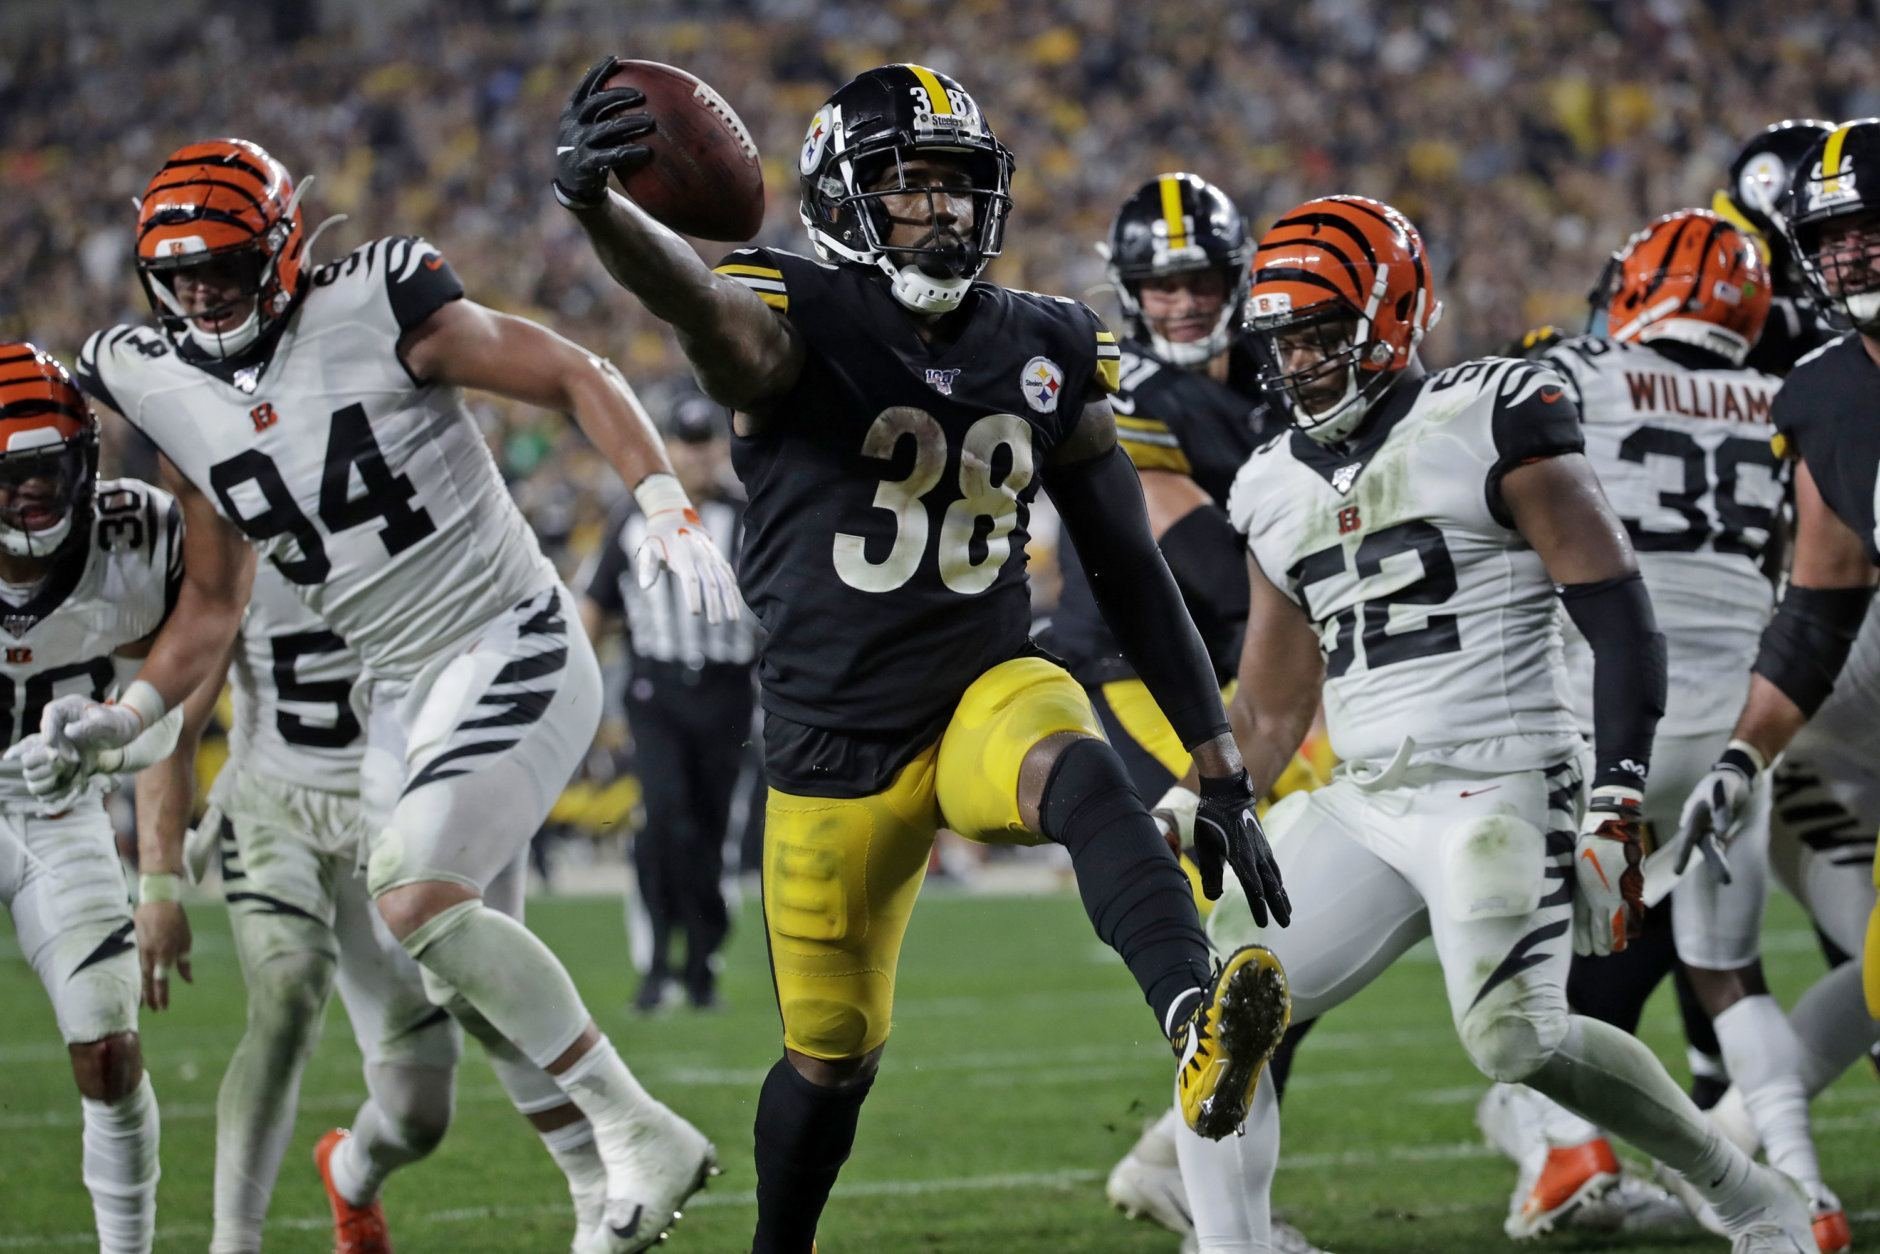 <p><b><i>Bengals 3</i></b><br /> <b><i>Steelers 27</i></b></p> <p>From winless to just a game out of first place in the AFC North &#8212; crazy how much changed for Pittsburgh in just a week.</p> <p>In the 100th meeting between these division rivals, the Steelers returned to form by getting more than twice as many sacks (8) as points allowed and Jaylen Samuels became the second player since 1970 to notch three completions, three catches and three rushes in a single game. They&#8217;ll need another effort like this next week to knock off the arch-rival Ravens.</p>